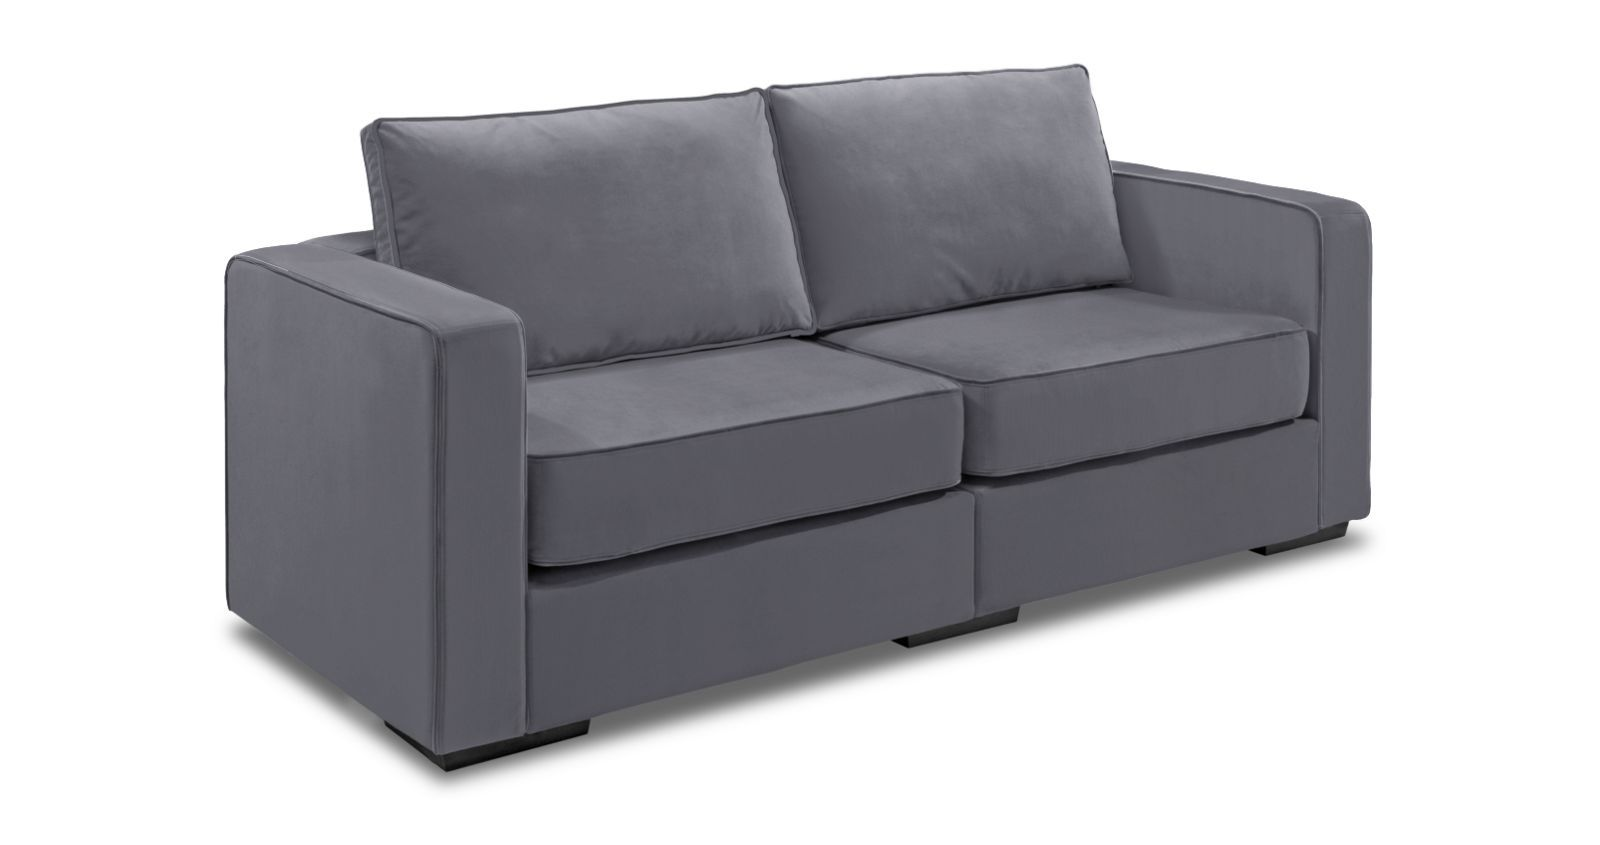 Cool Modular Sectional Loveseat 2 Seats 4 Sides Living Room Pdpeps Interior Chair Design Pdpepsorg